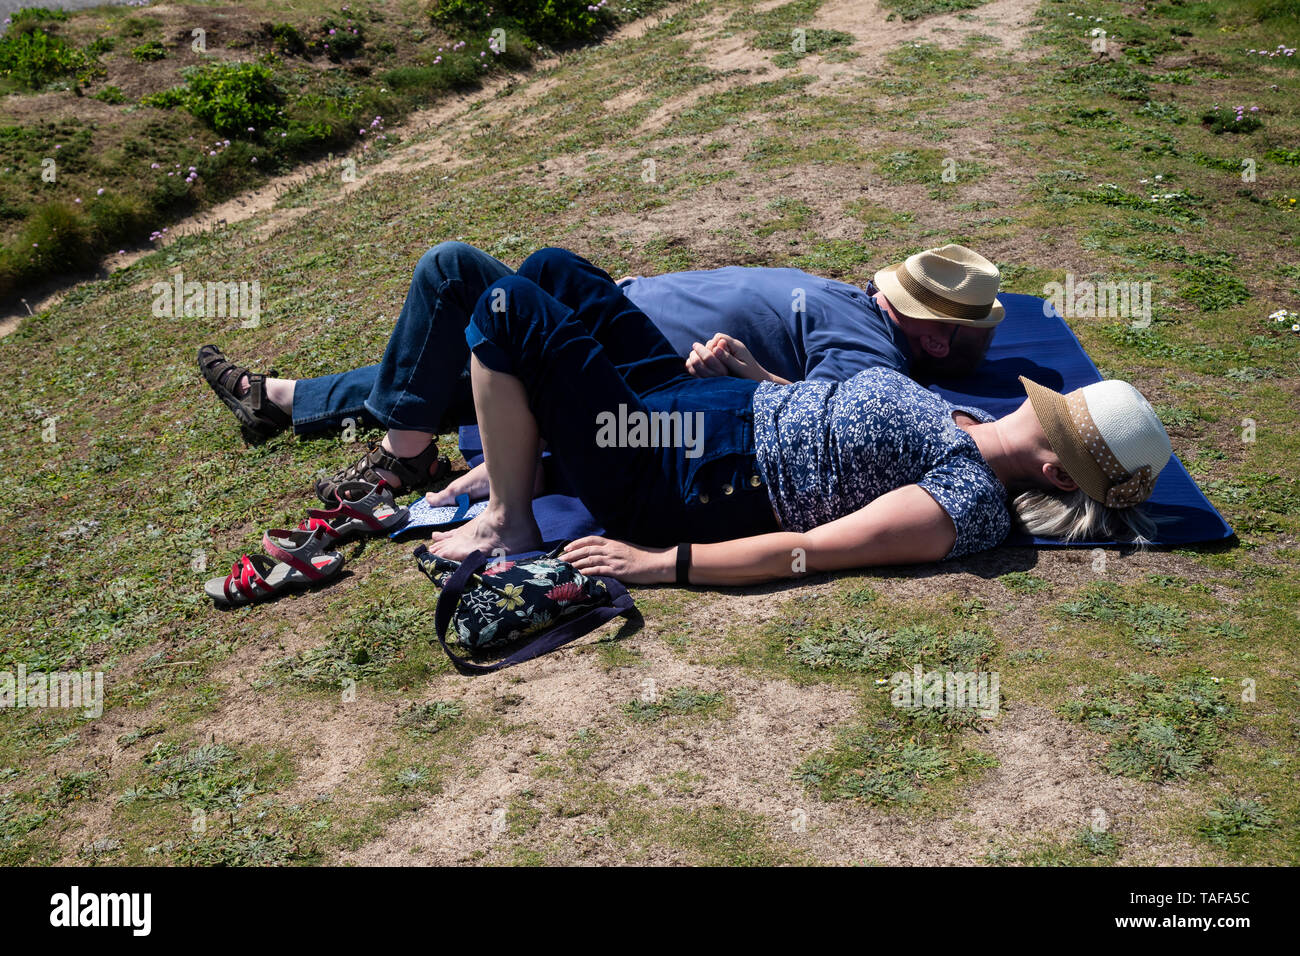 A middle aged couple with hats over their faces sunbathing and dozing on a grassy mound - Stock Image